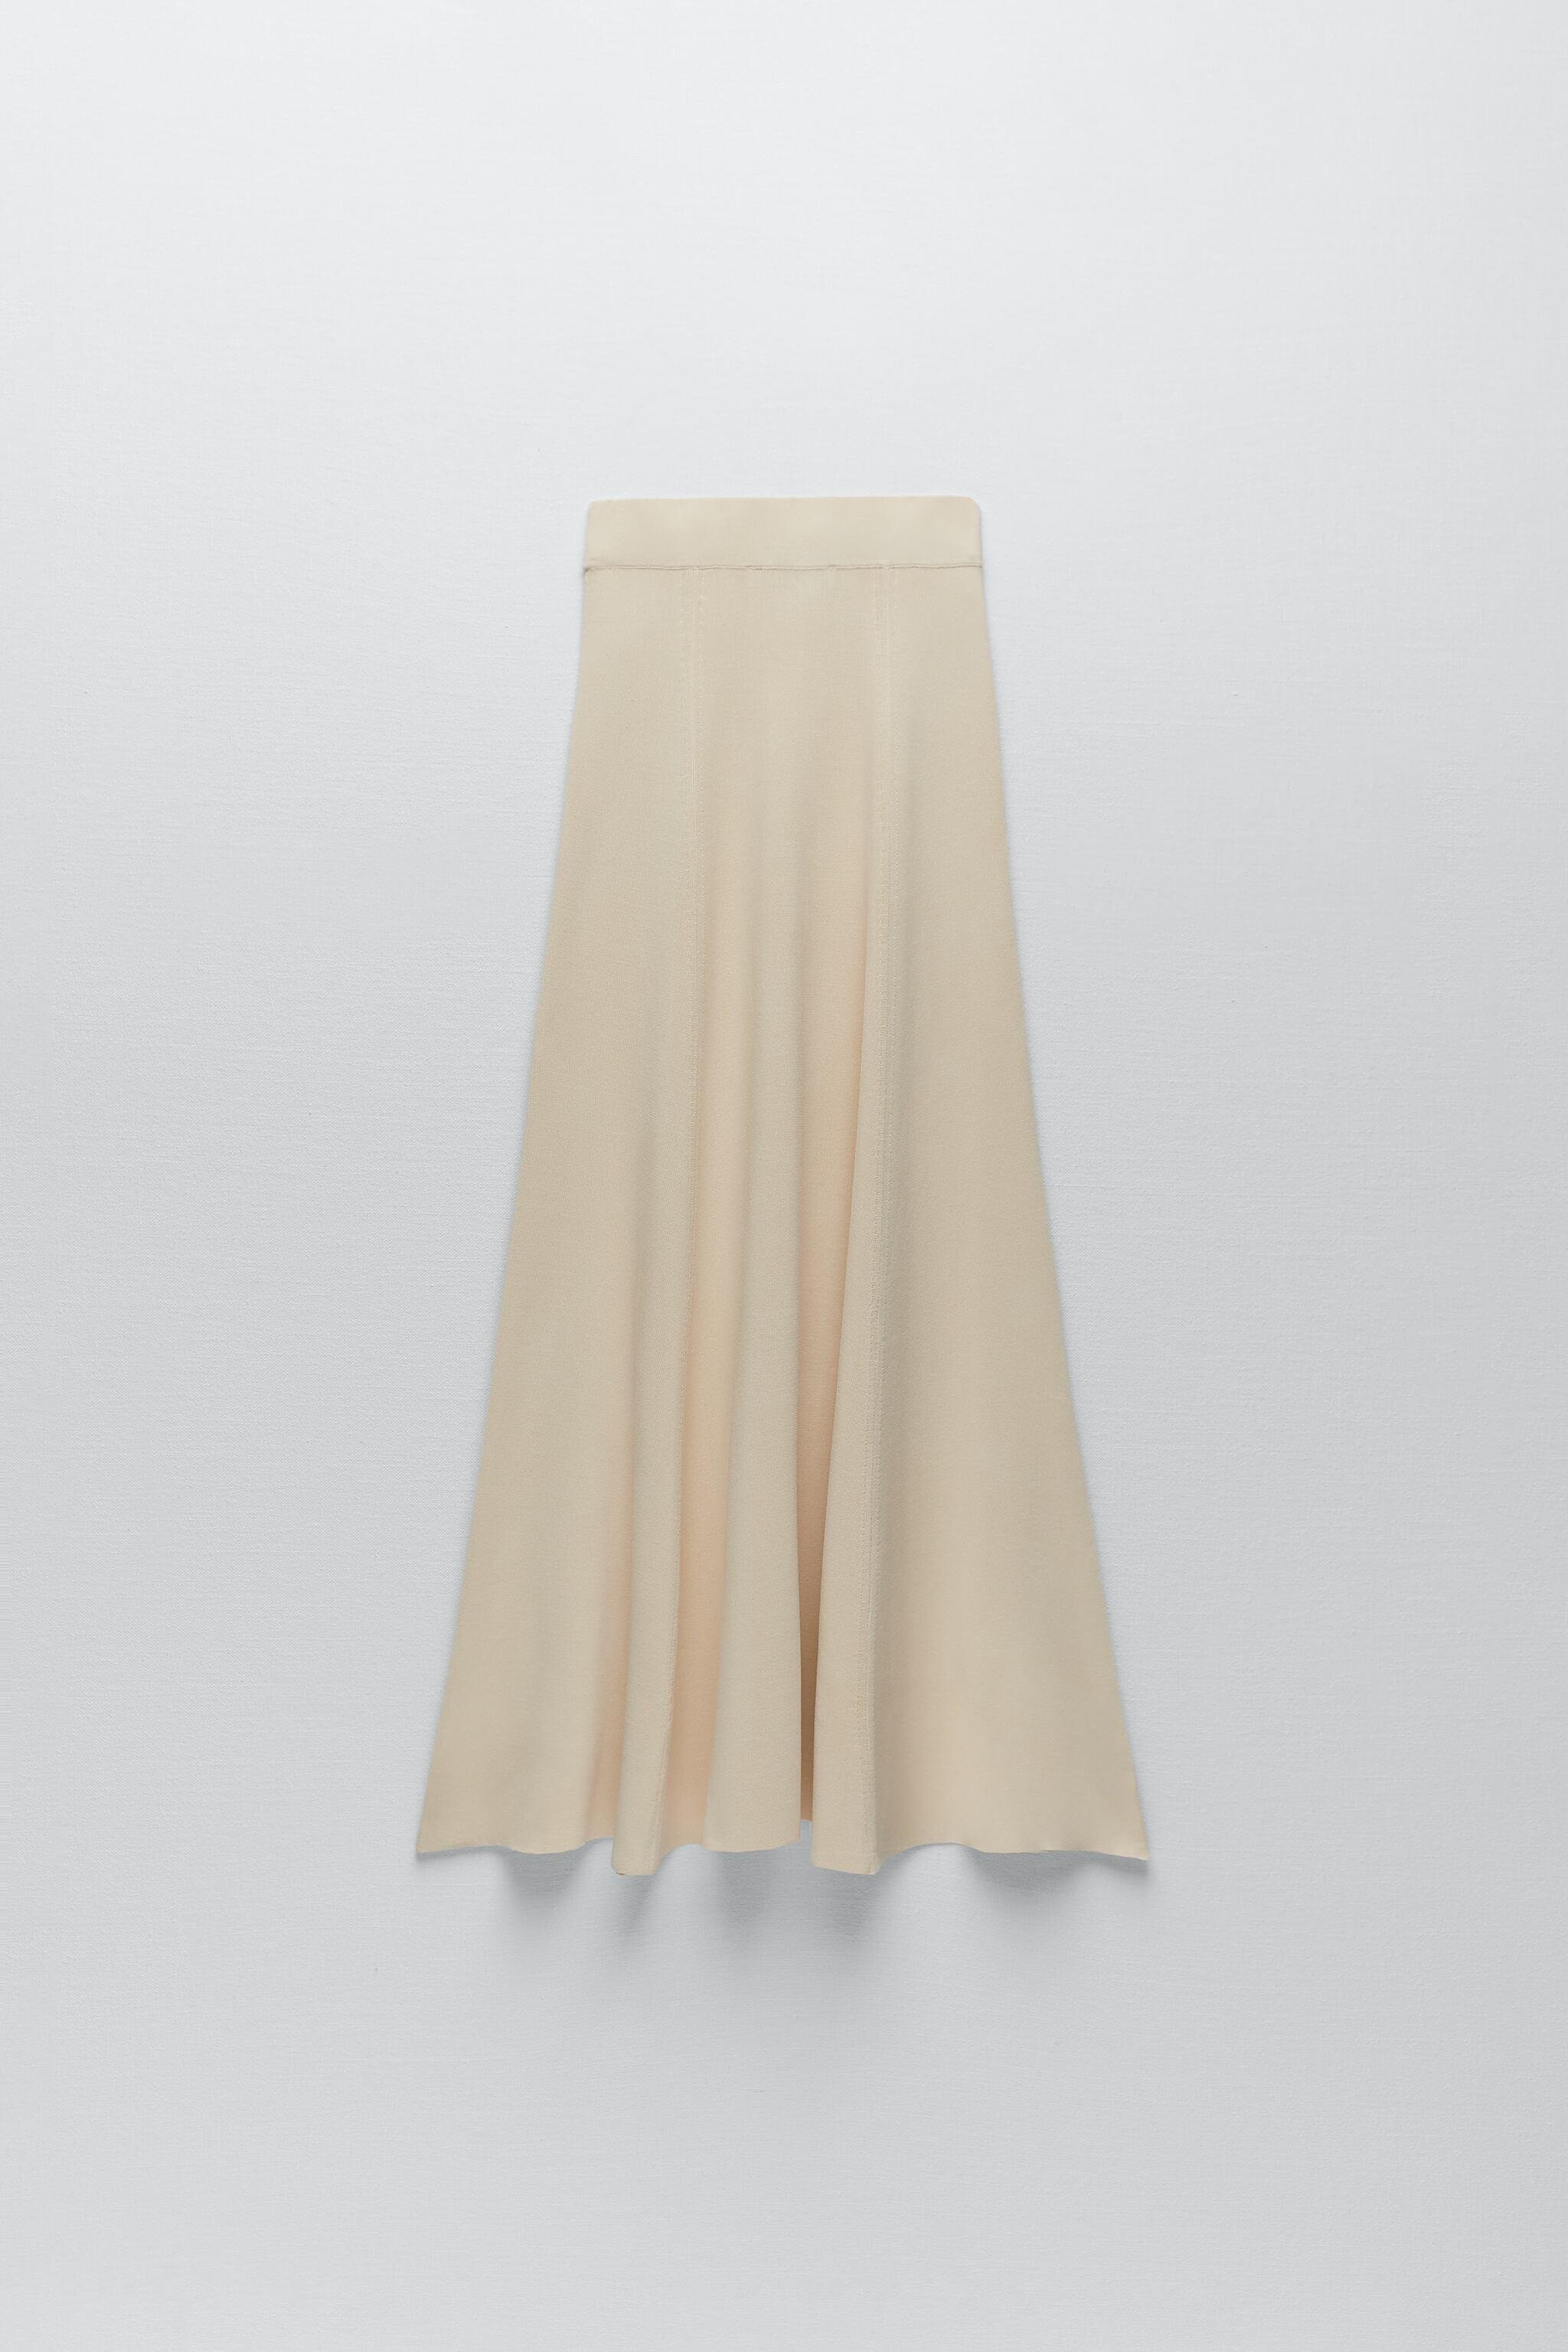 LONG KNIT SKIRT LIMITED EDITION 3